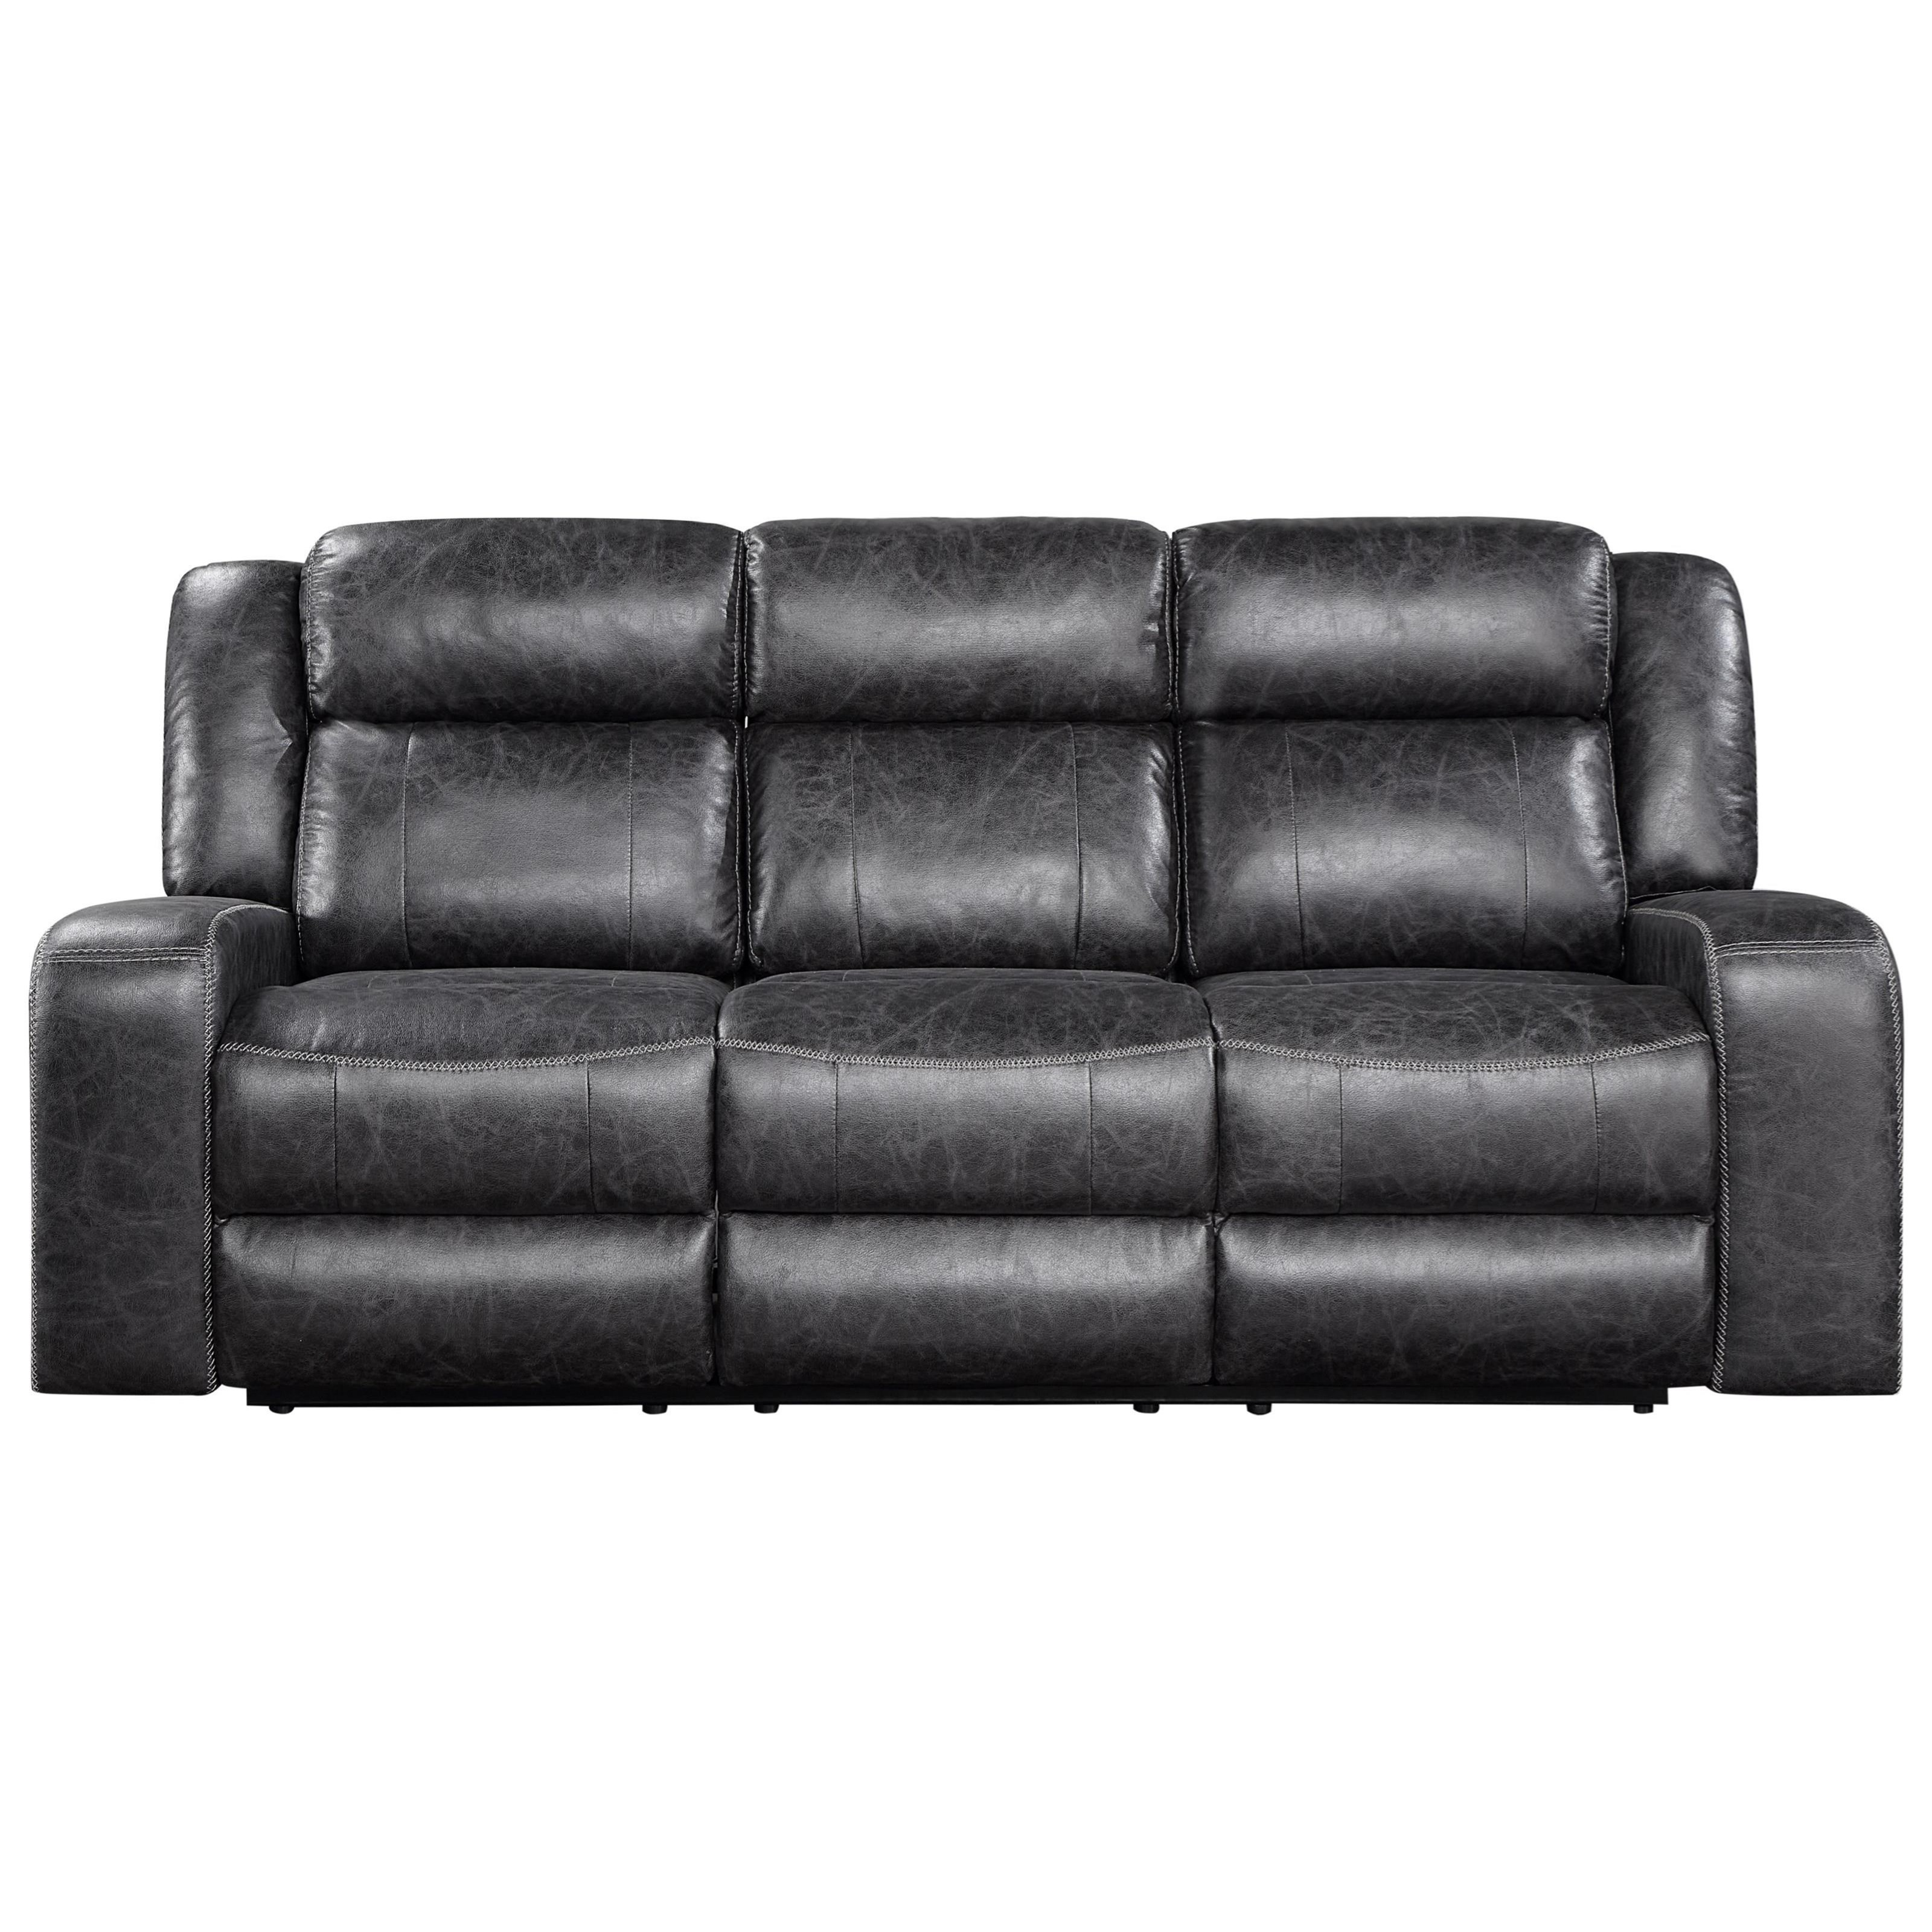 Atticus Dual Recliner Sofa by New Classic at Beds N Stuff